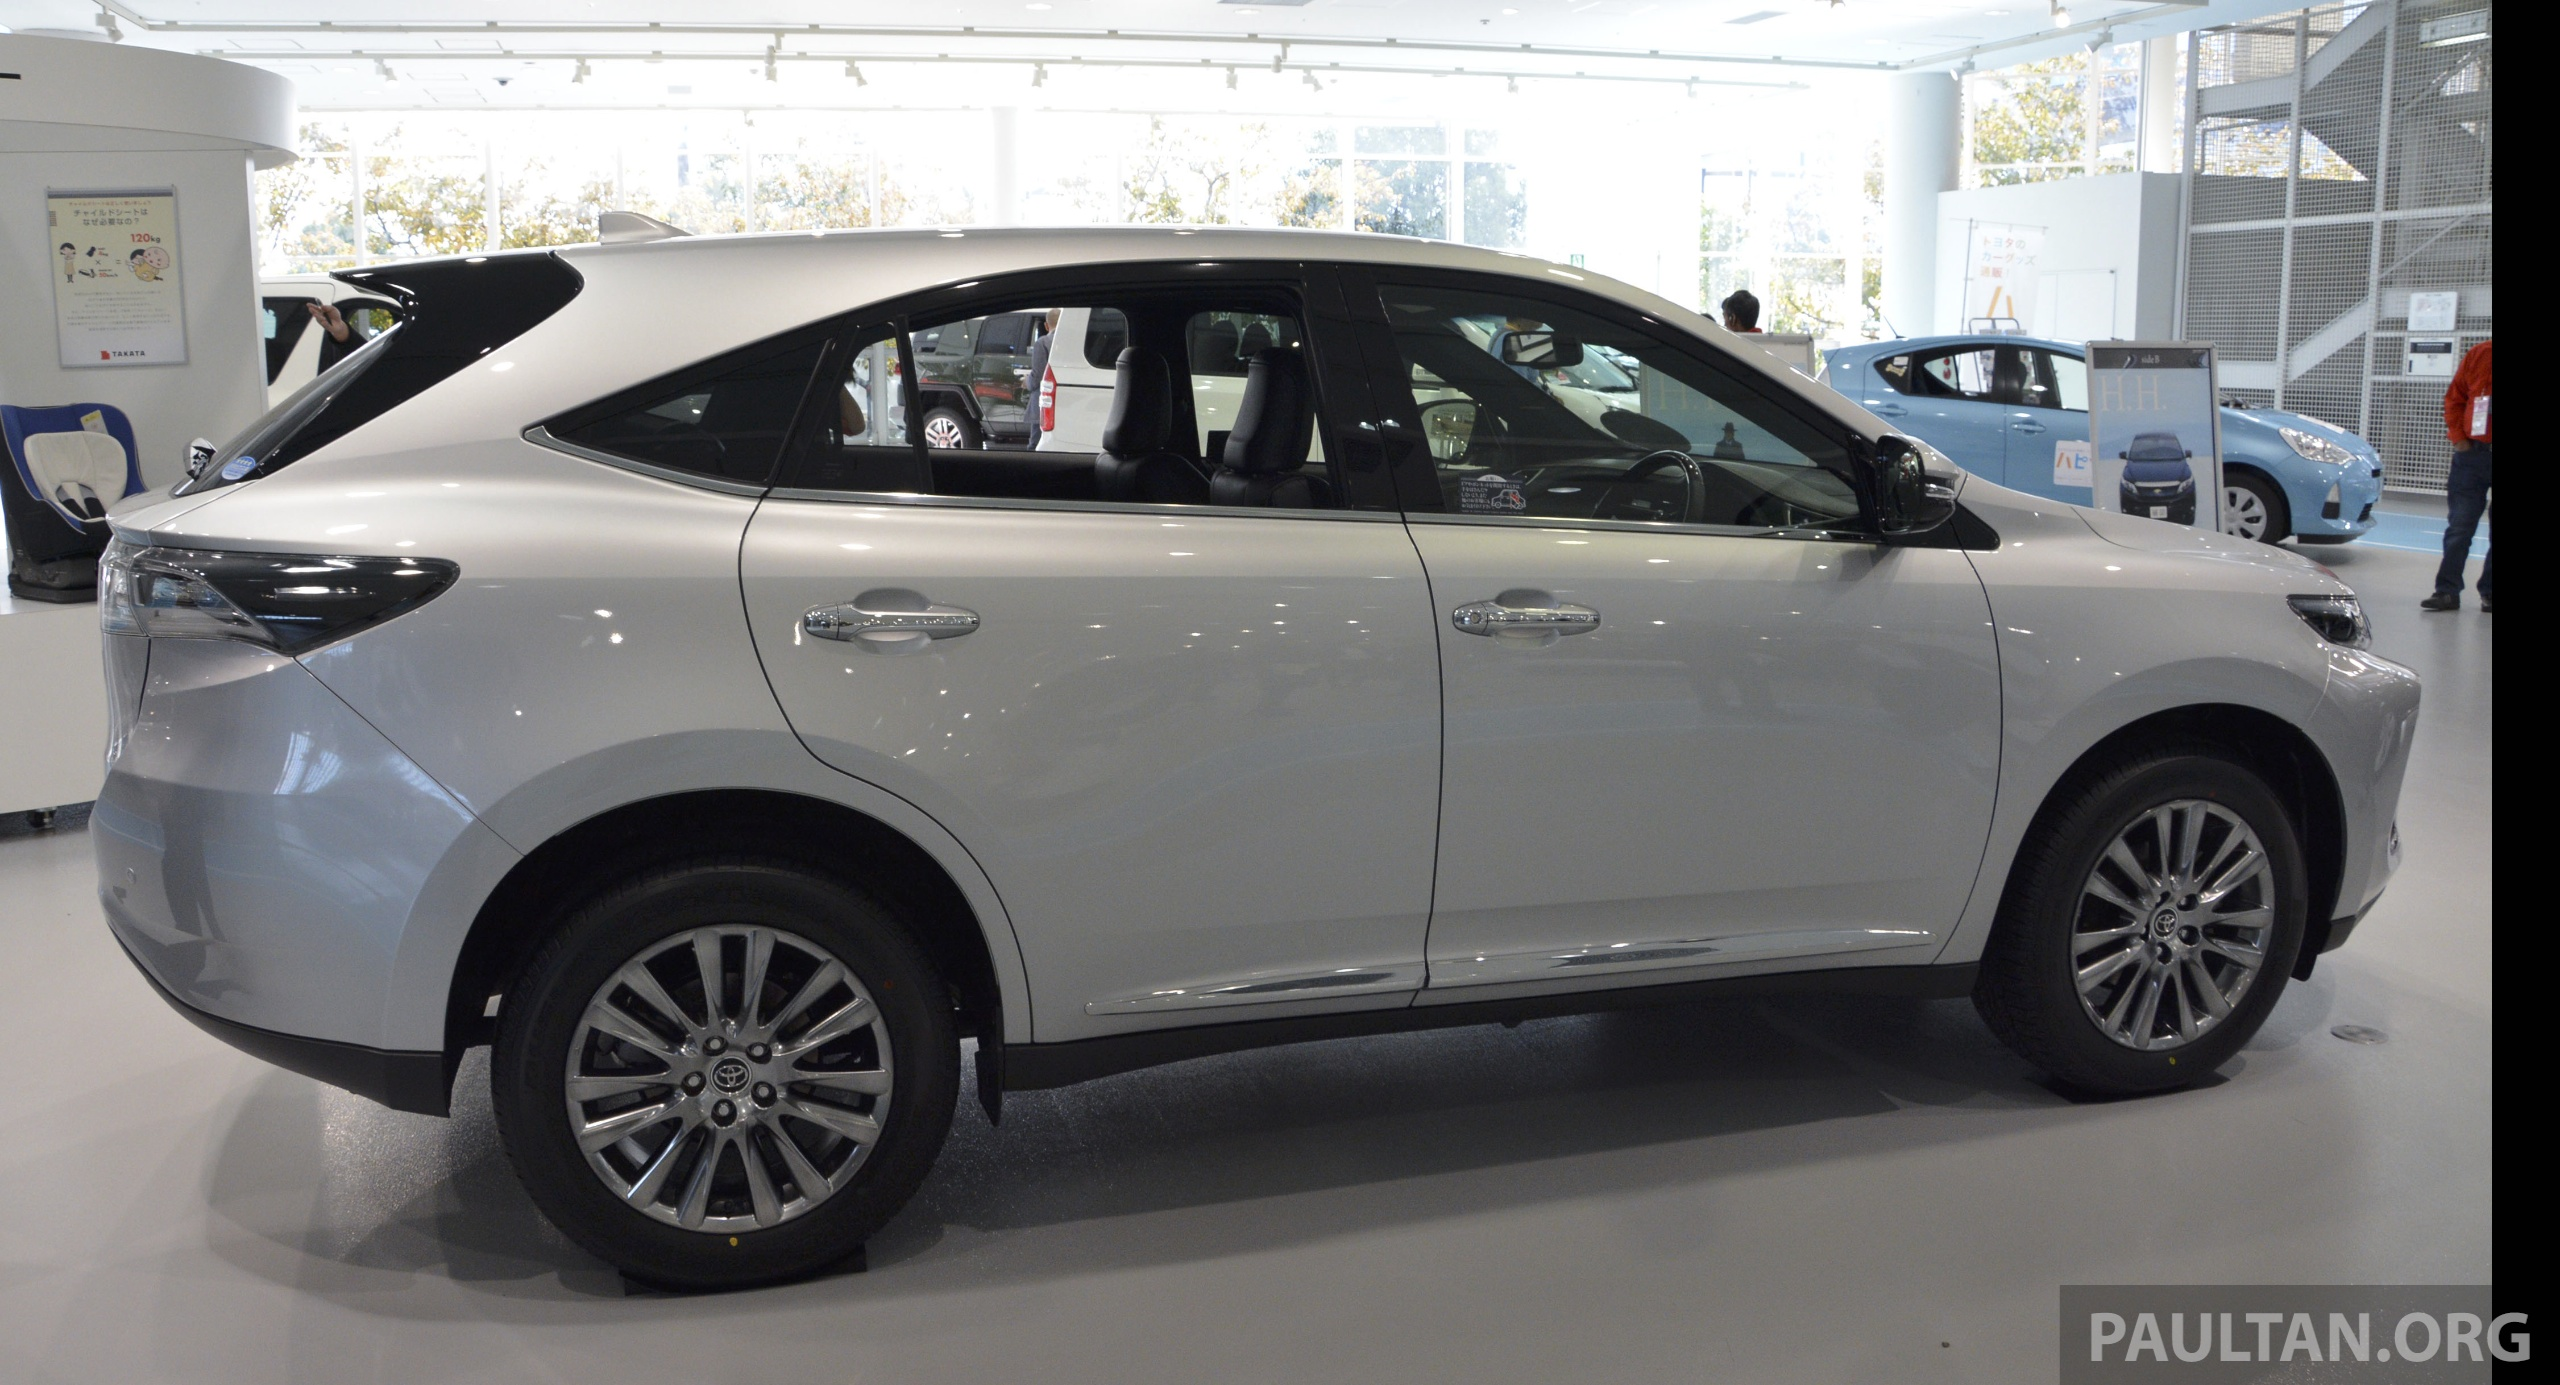 Toyota Harrier 2018 >> GALLERY: 2014 Toyota Harrier at Toyota Megaweb Paul Tan - Image 211131